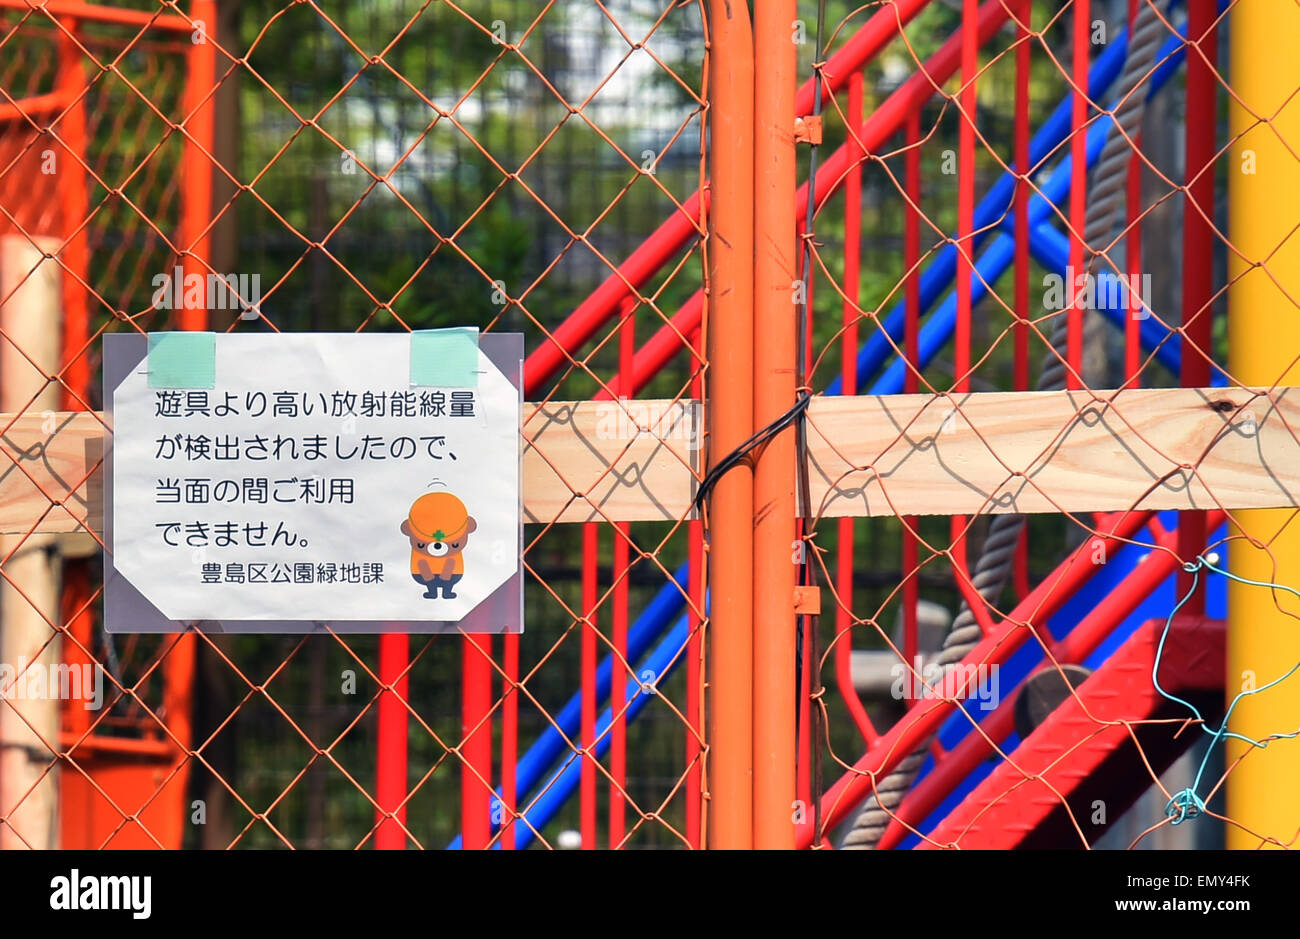 Tokyo, Japan. 24th Apr, 2015. Playground equipment is fenced off Friday, April 24, 2015, after an unusually high - Stock Image